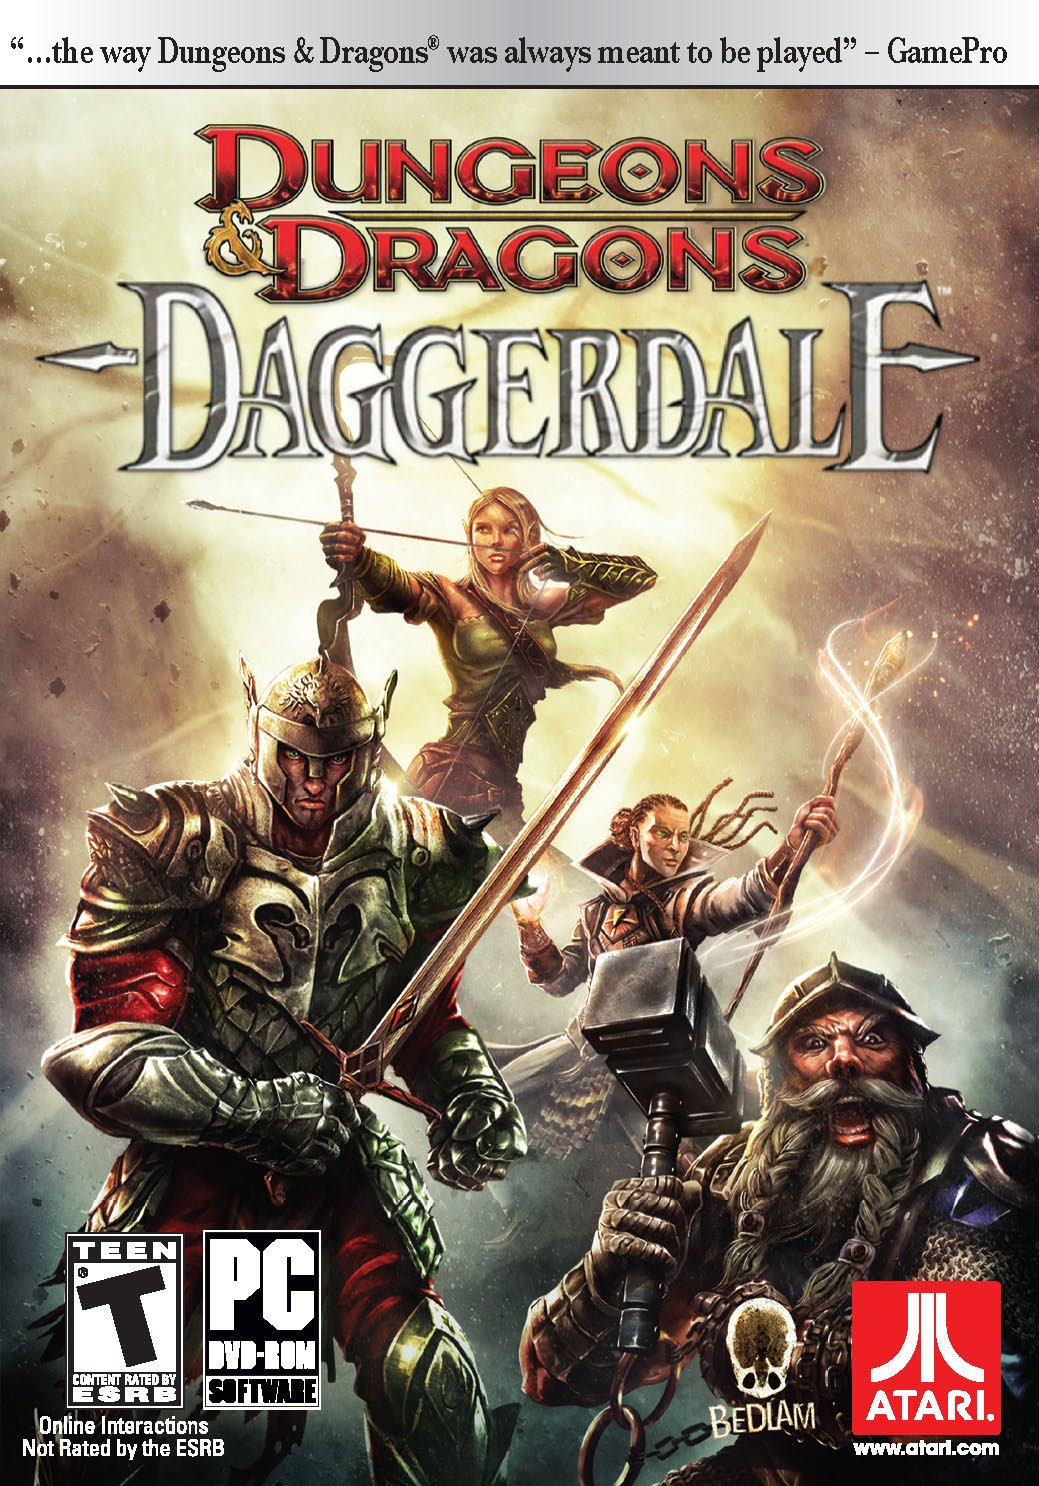 Dungeons & Dragons: Daggerdale (Xbox 360) Review 2